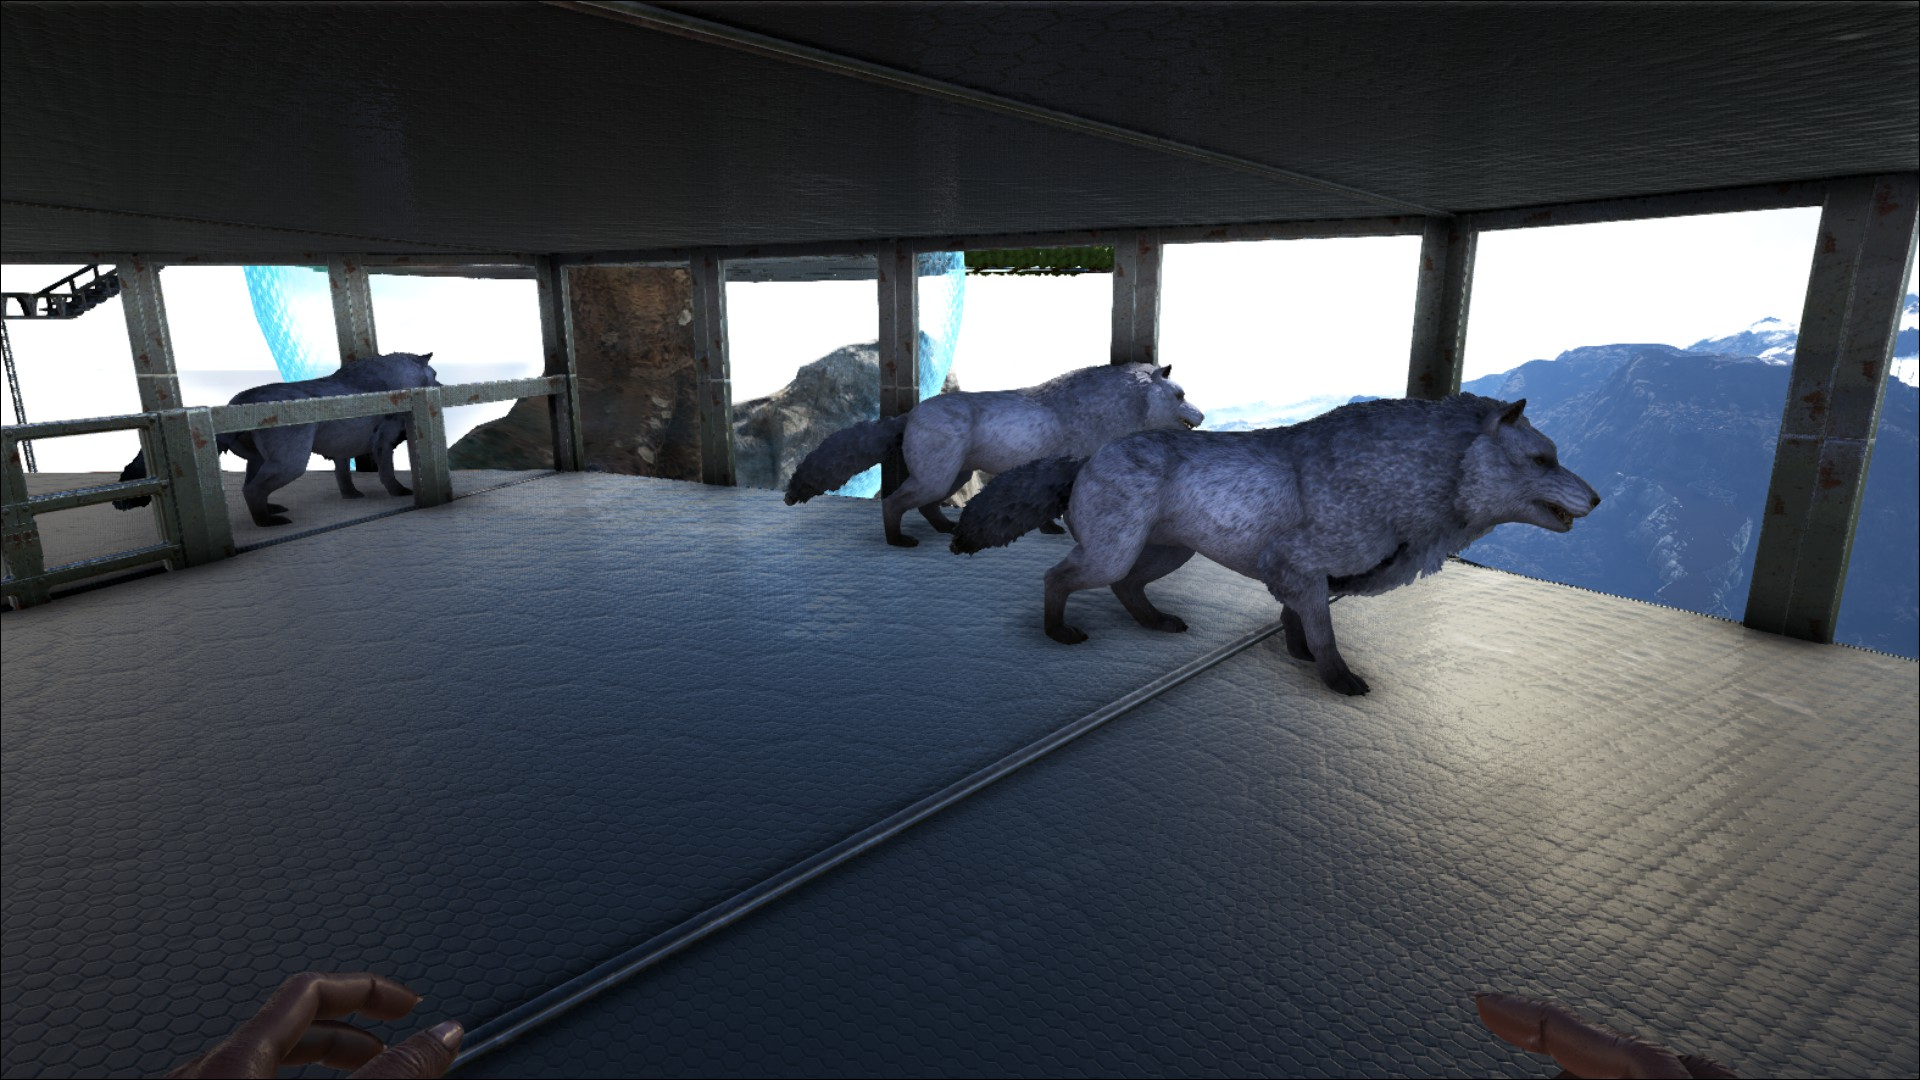 Ark:  Survival Evolved 3BE3E70DB019039C259067CCFB24B4A6EB1E0C7A